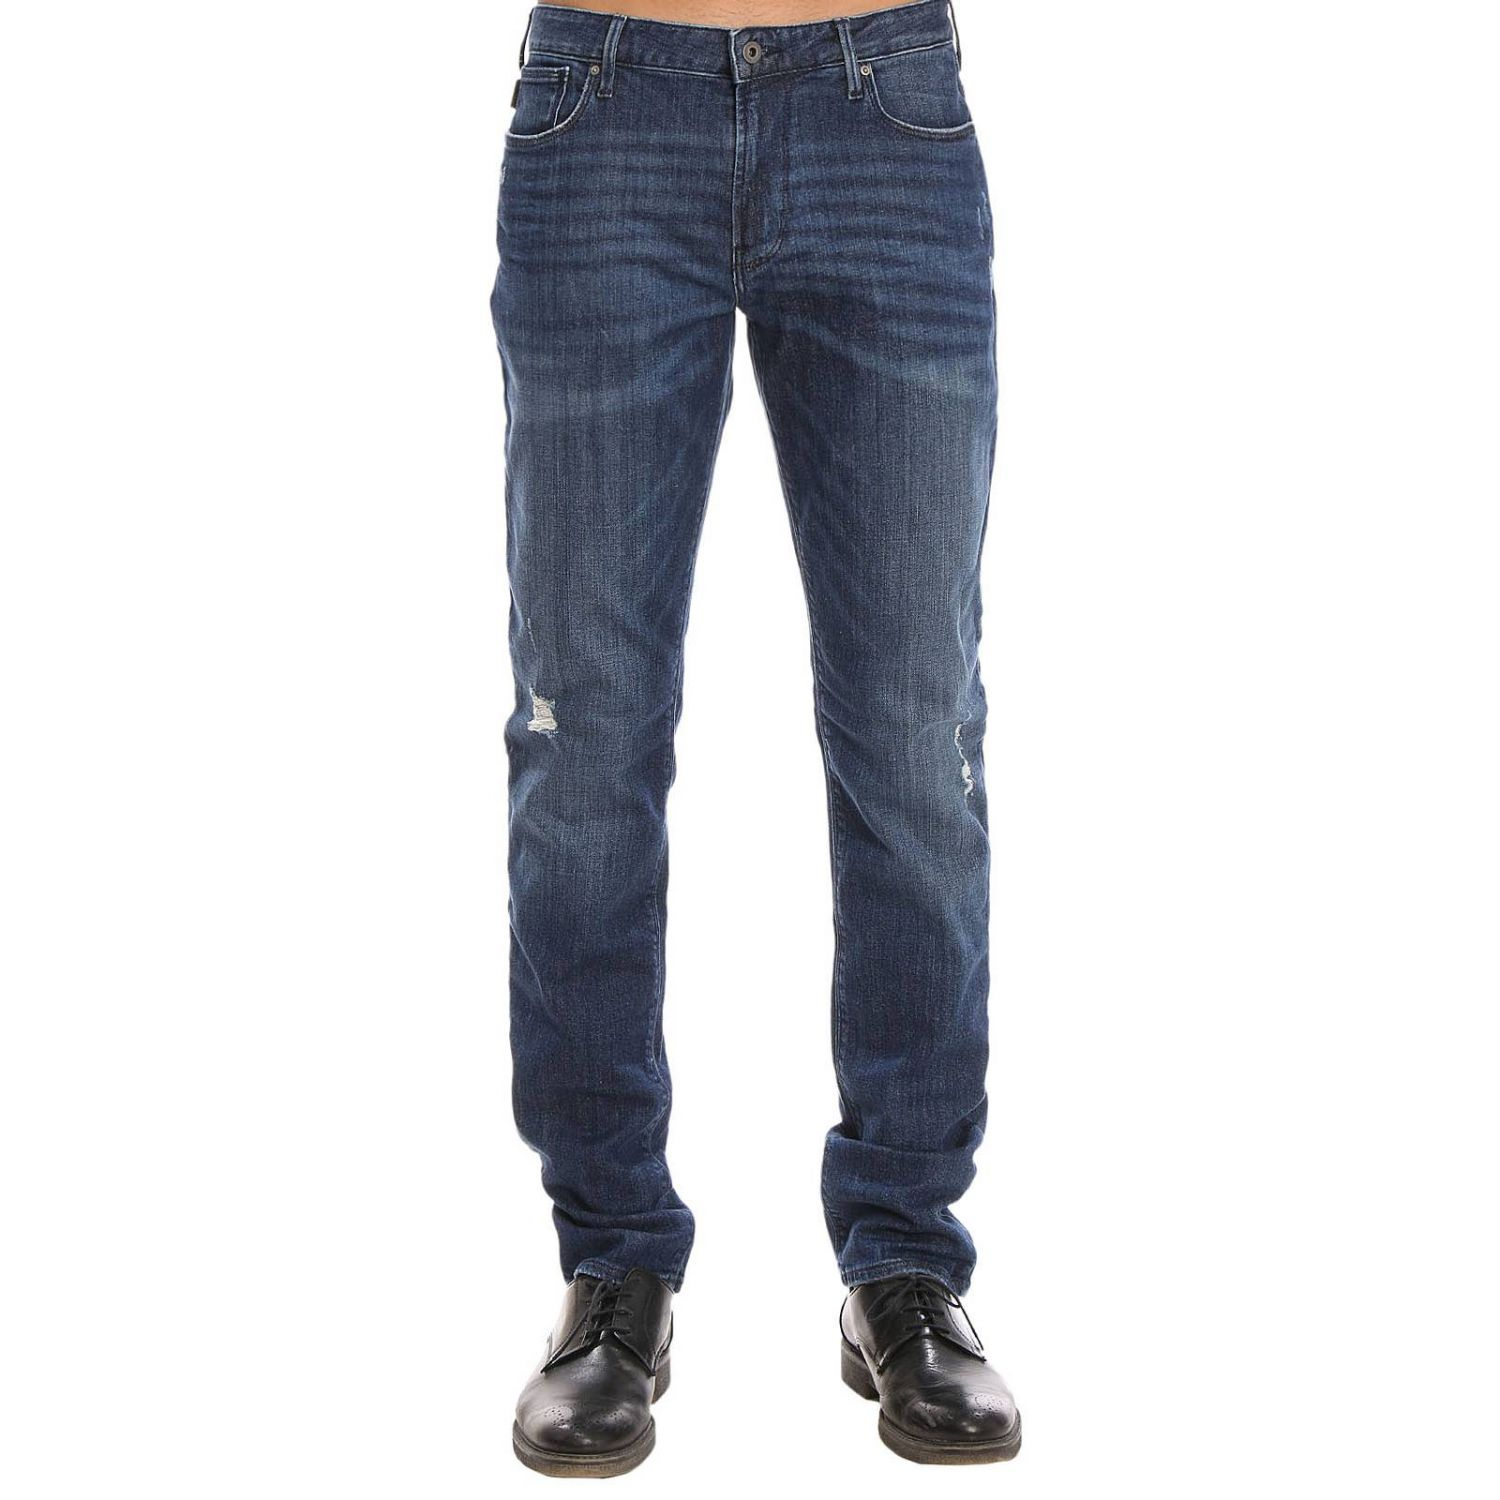 Jeans men Emporio Armani denim 1